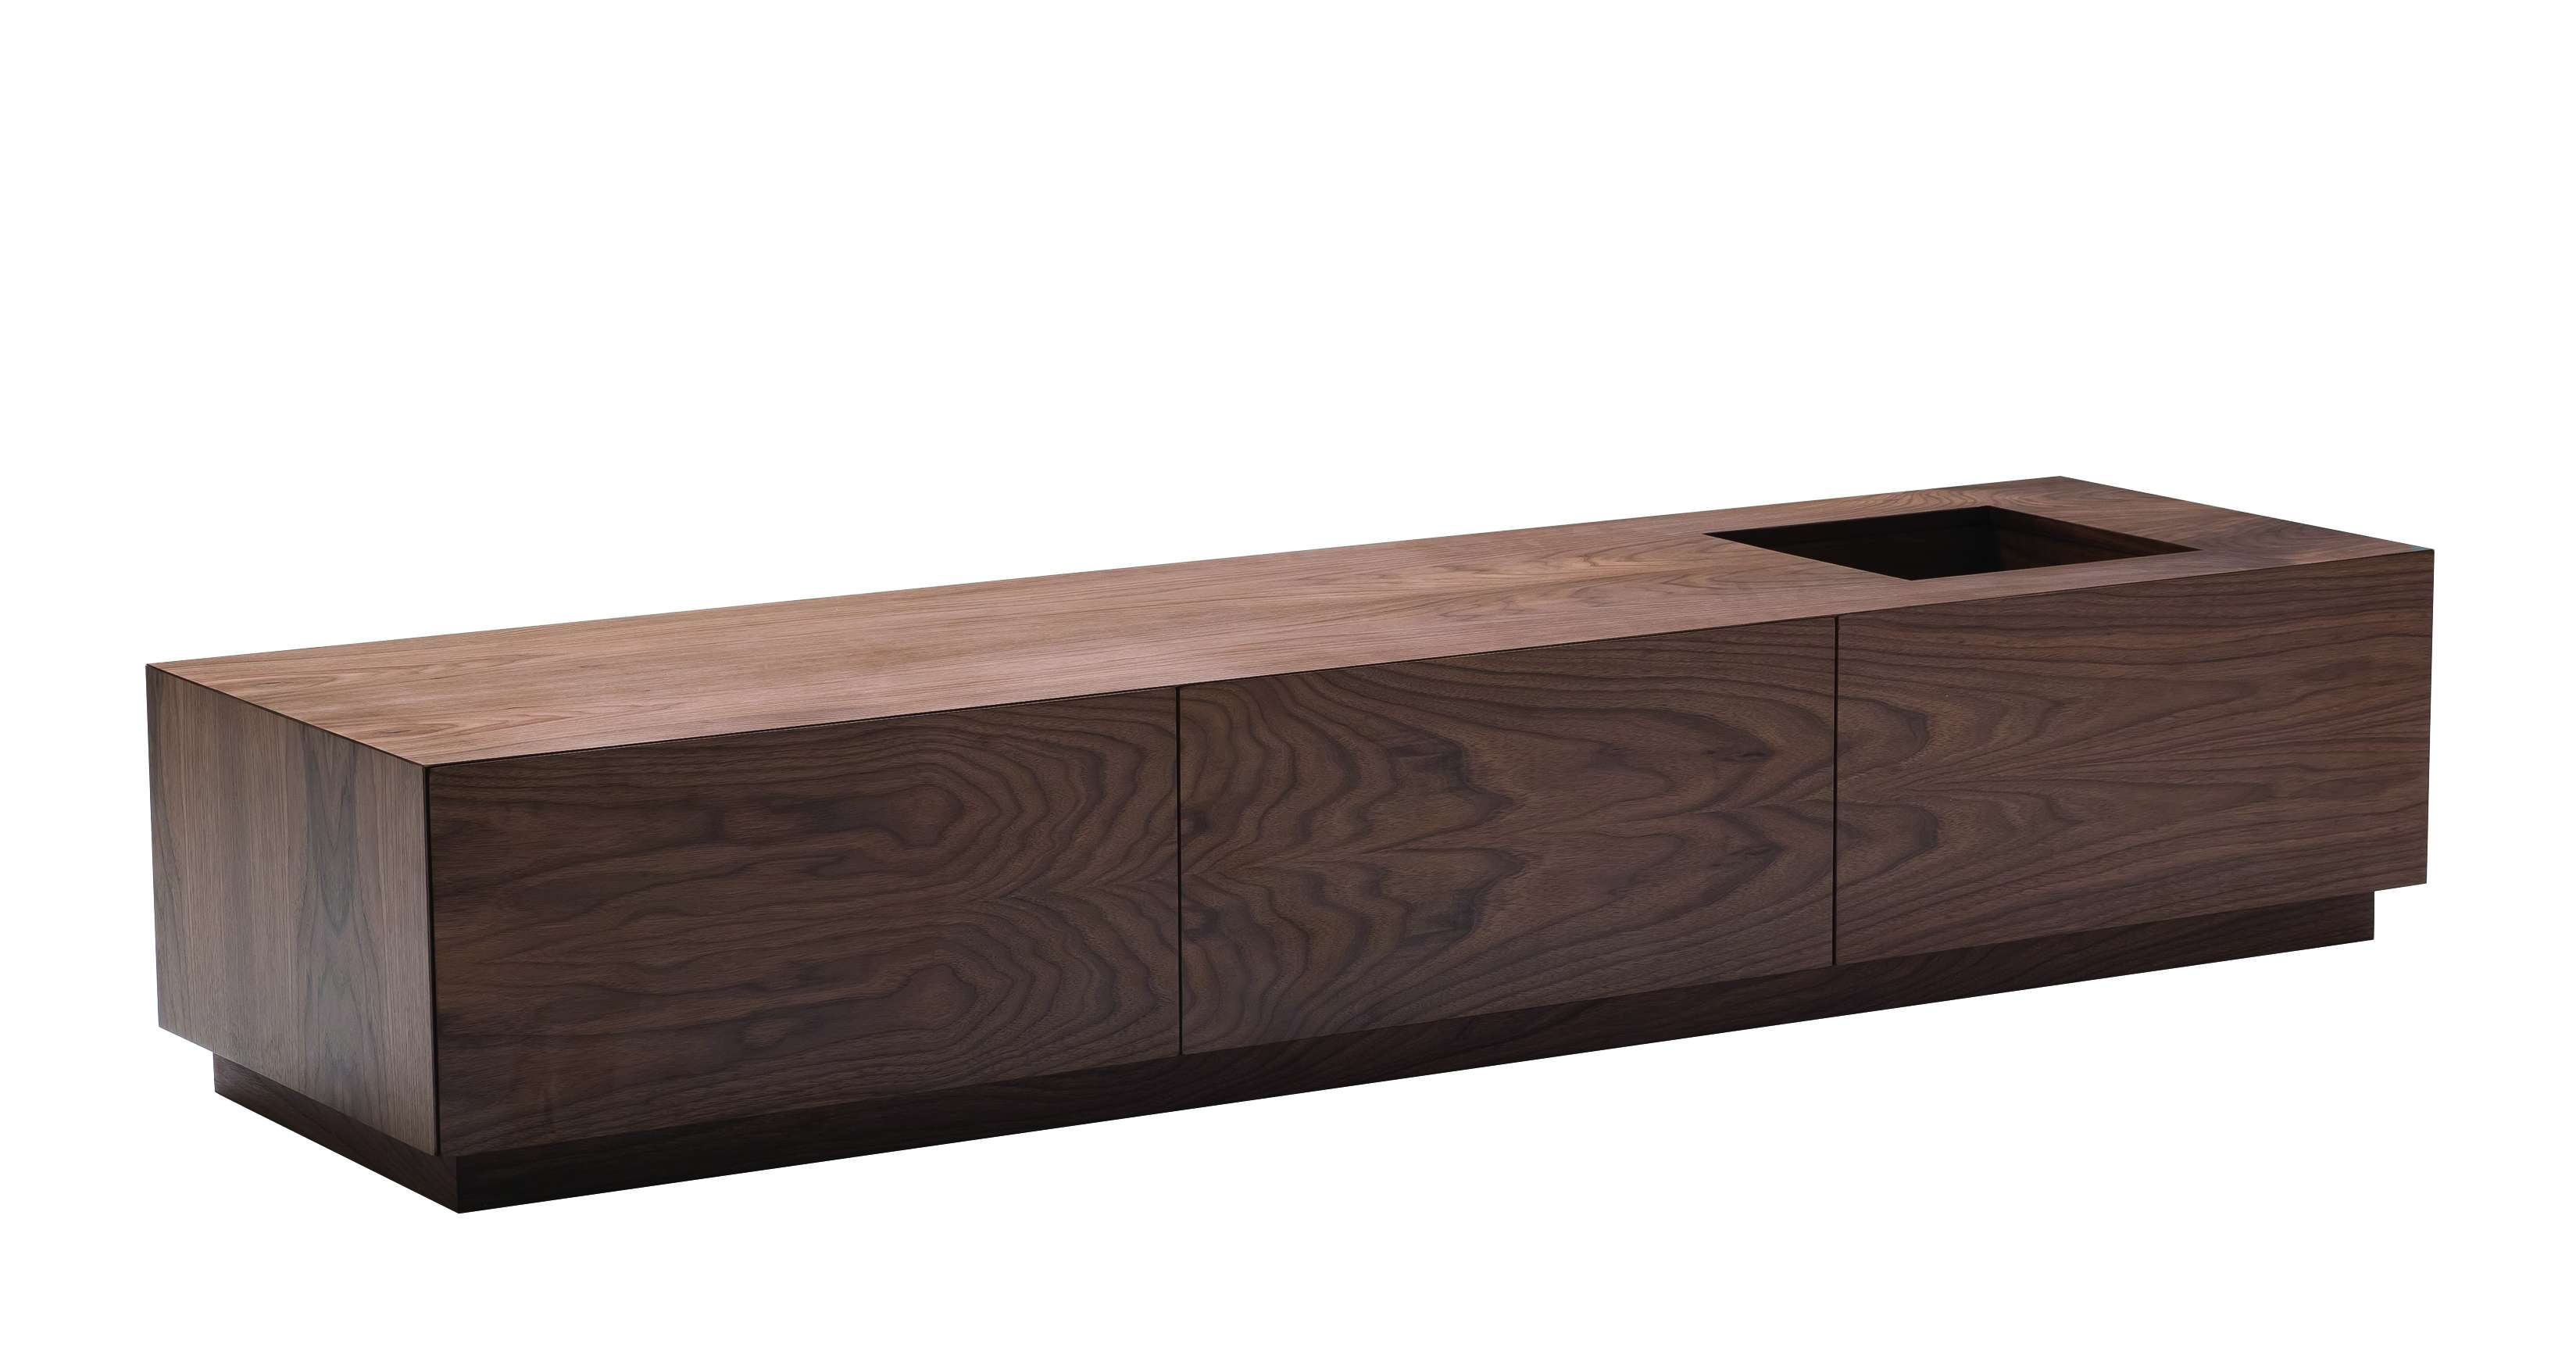 Fashionable Long Coffee Tables With Regard To Extra Long Rectangular Coffee Tables • Coffee Table Ideas (View 16 of 20)